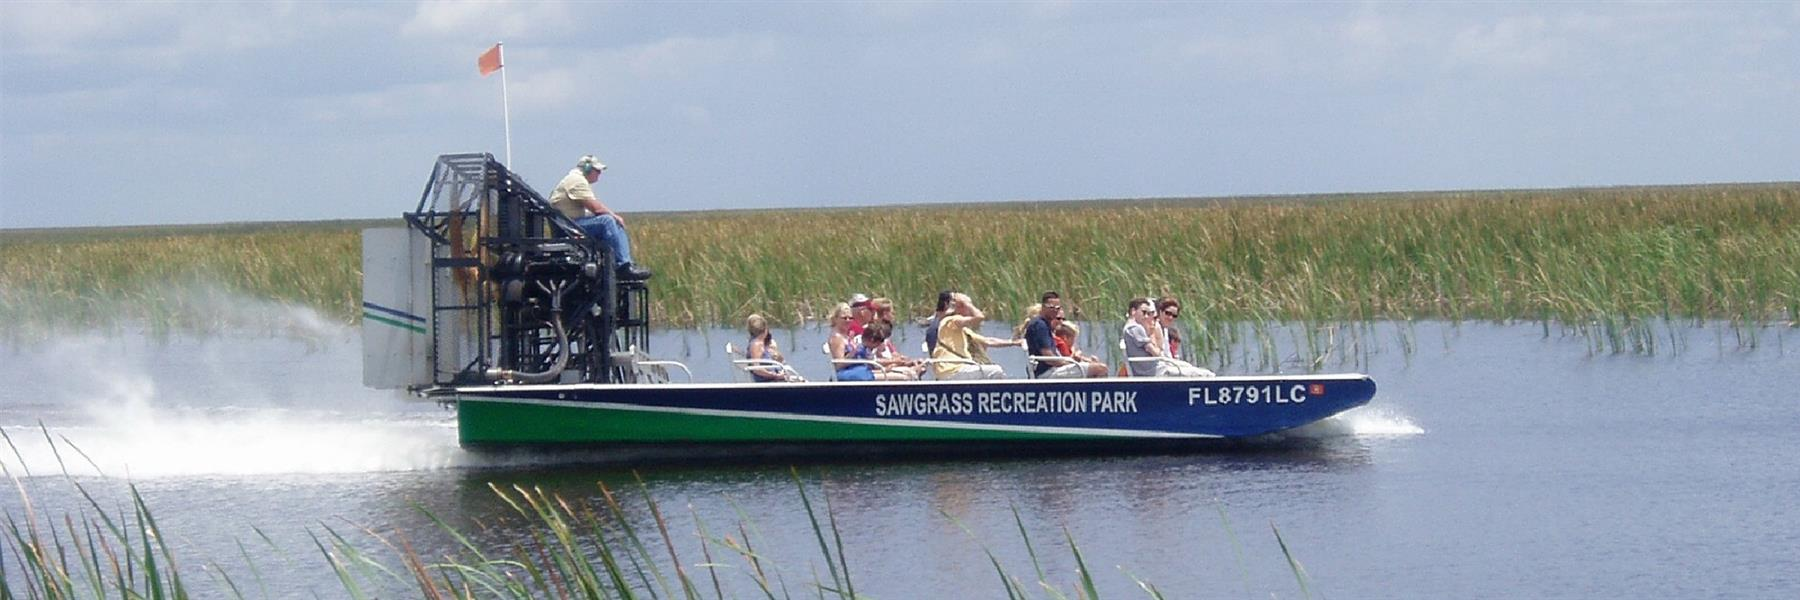 Everglades Tour in Weston, Florida